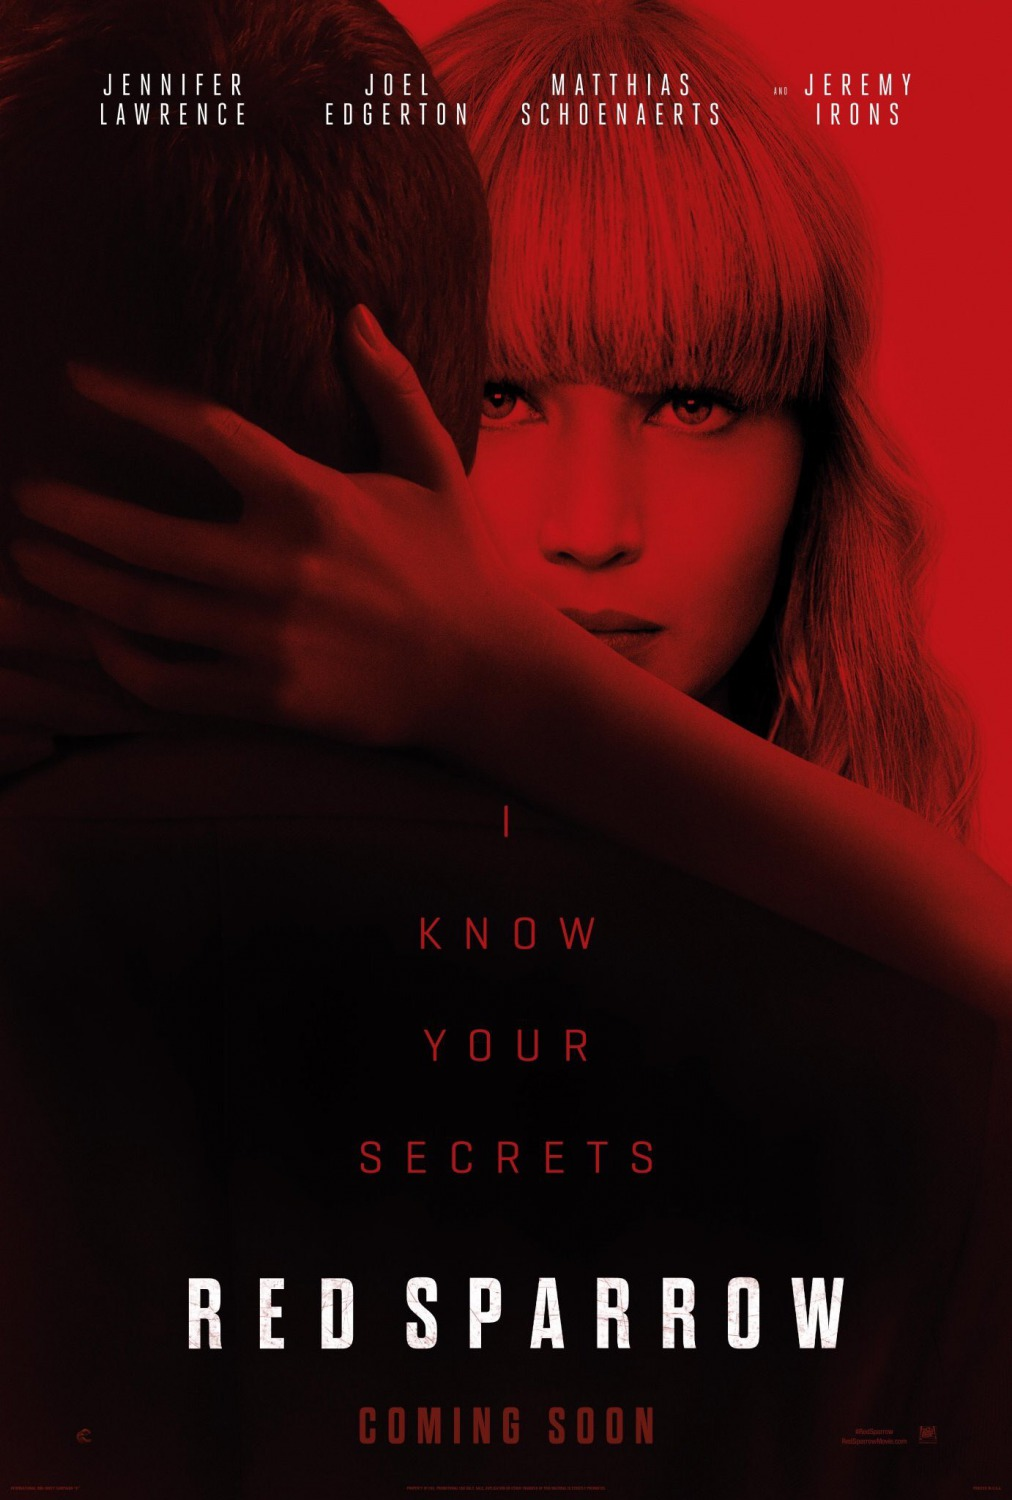 4 red sparrow movie poster